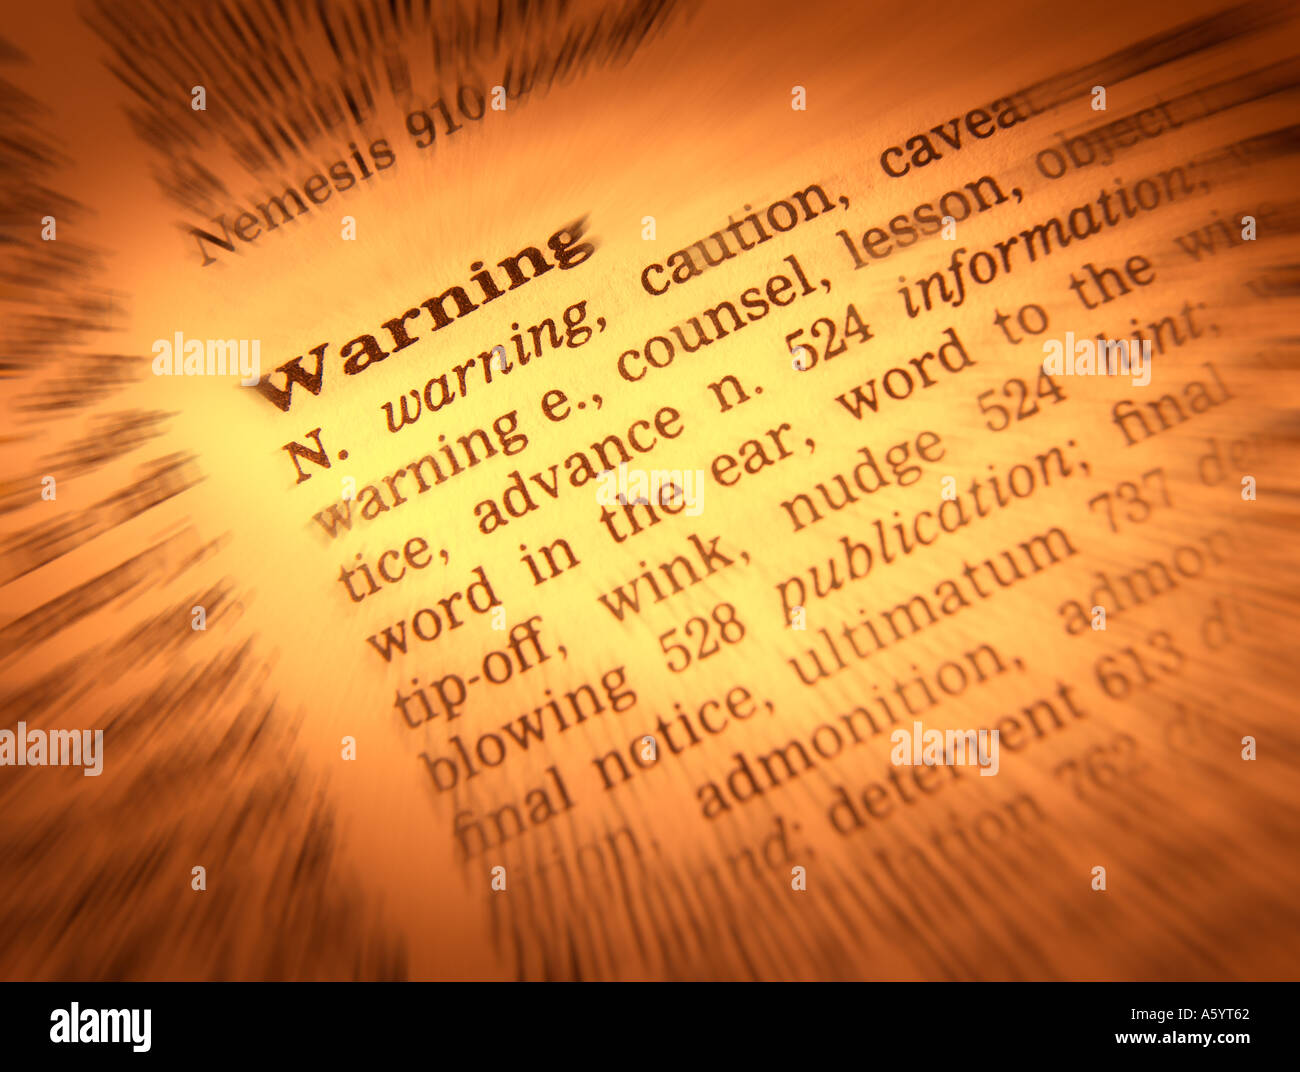 THESAURUS PAGE SHOWING DEFINITION OF WORD WARNING